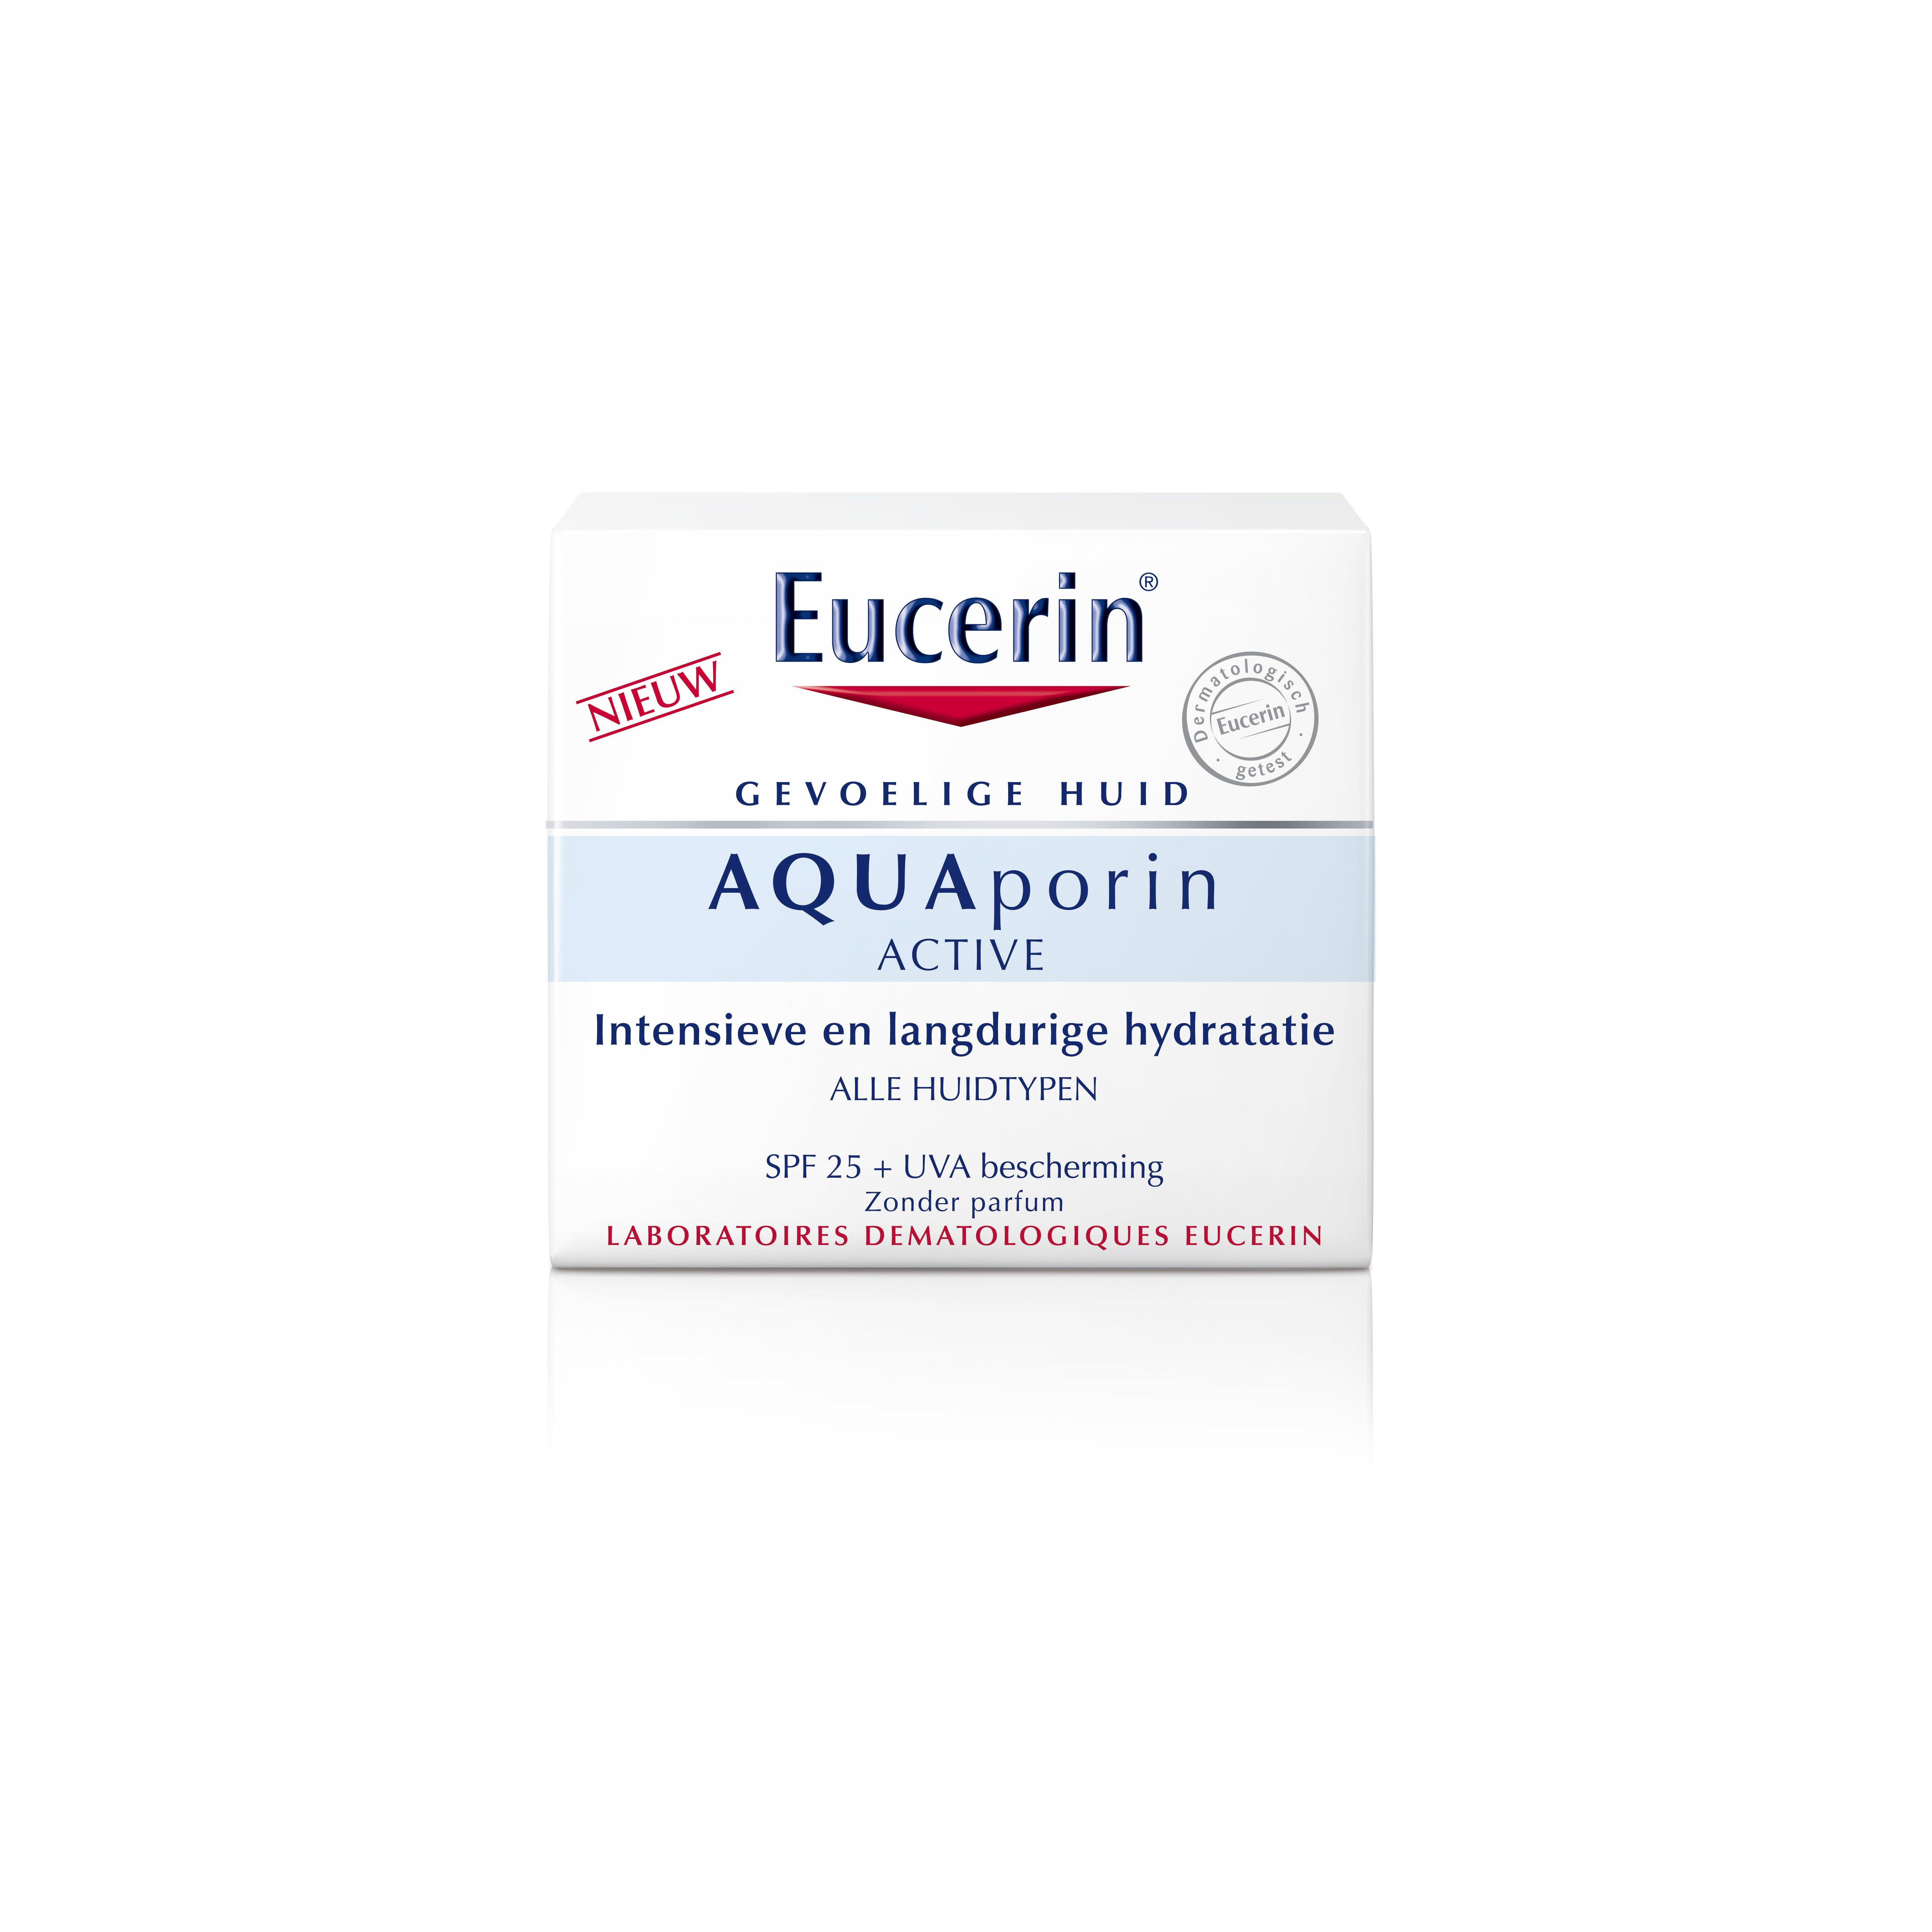 Image of Eucerin Aquaporin active hydraterende crème SPF25